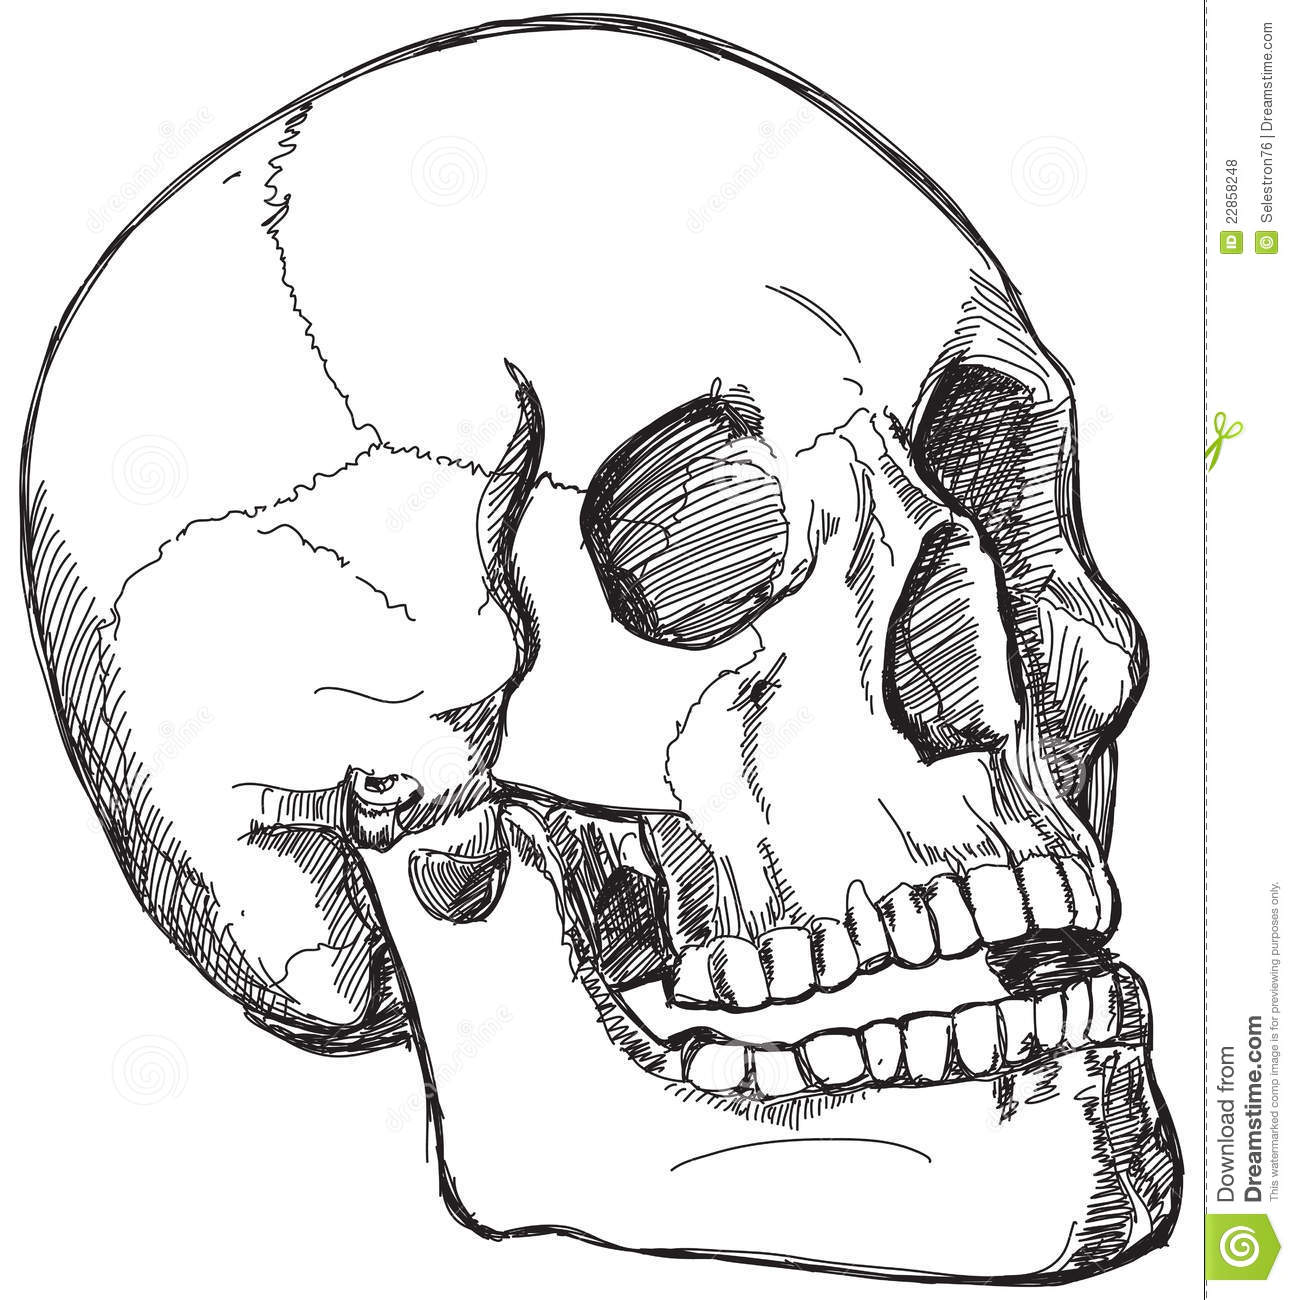 Skull Sketch Royalty Free Stock Photos Image 22858248